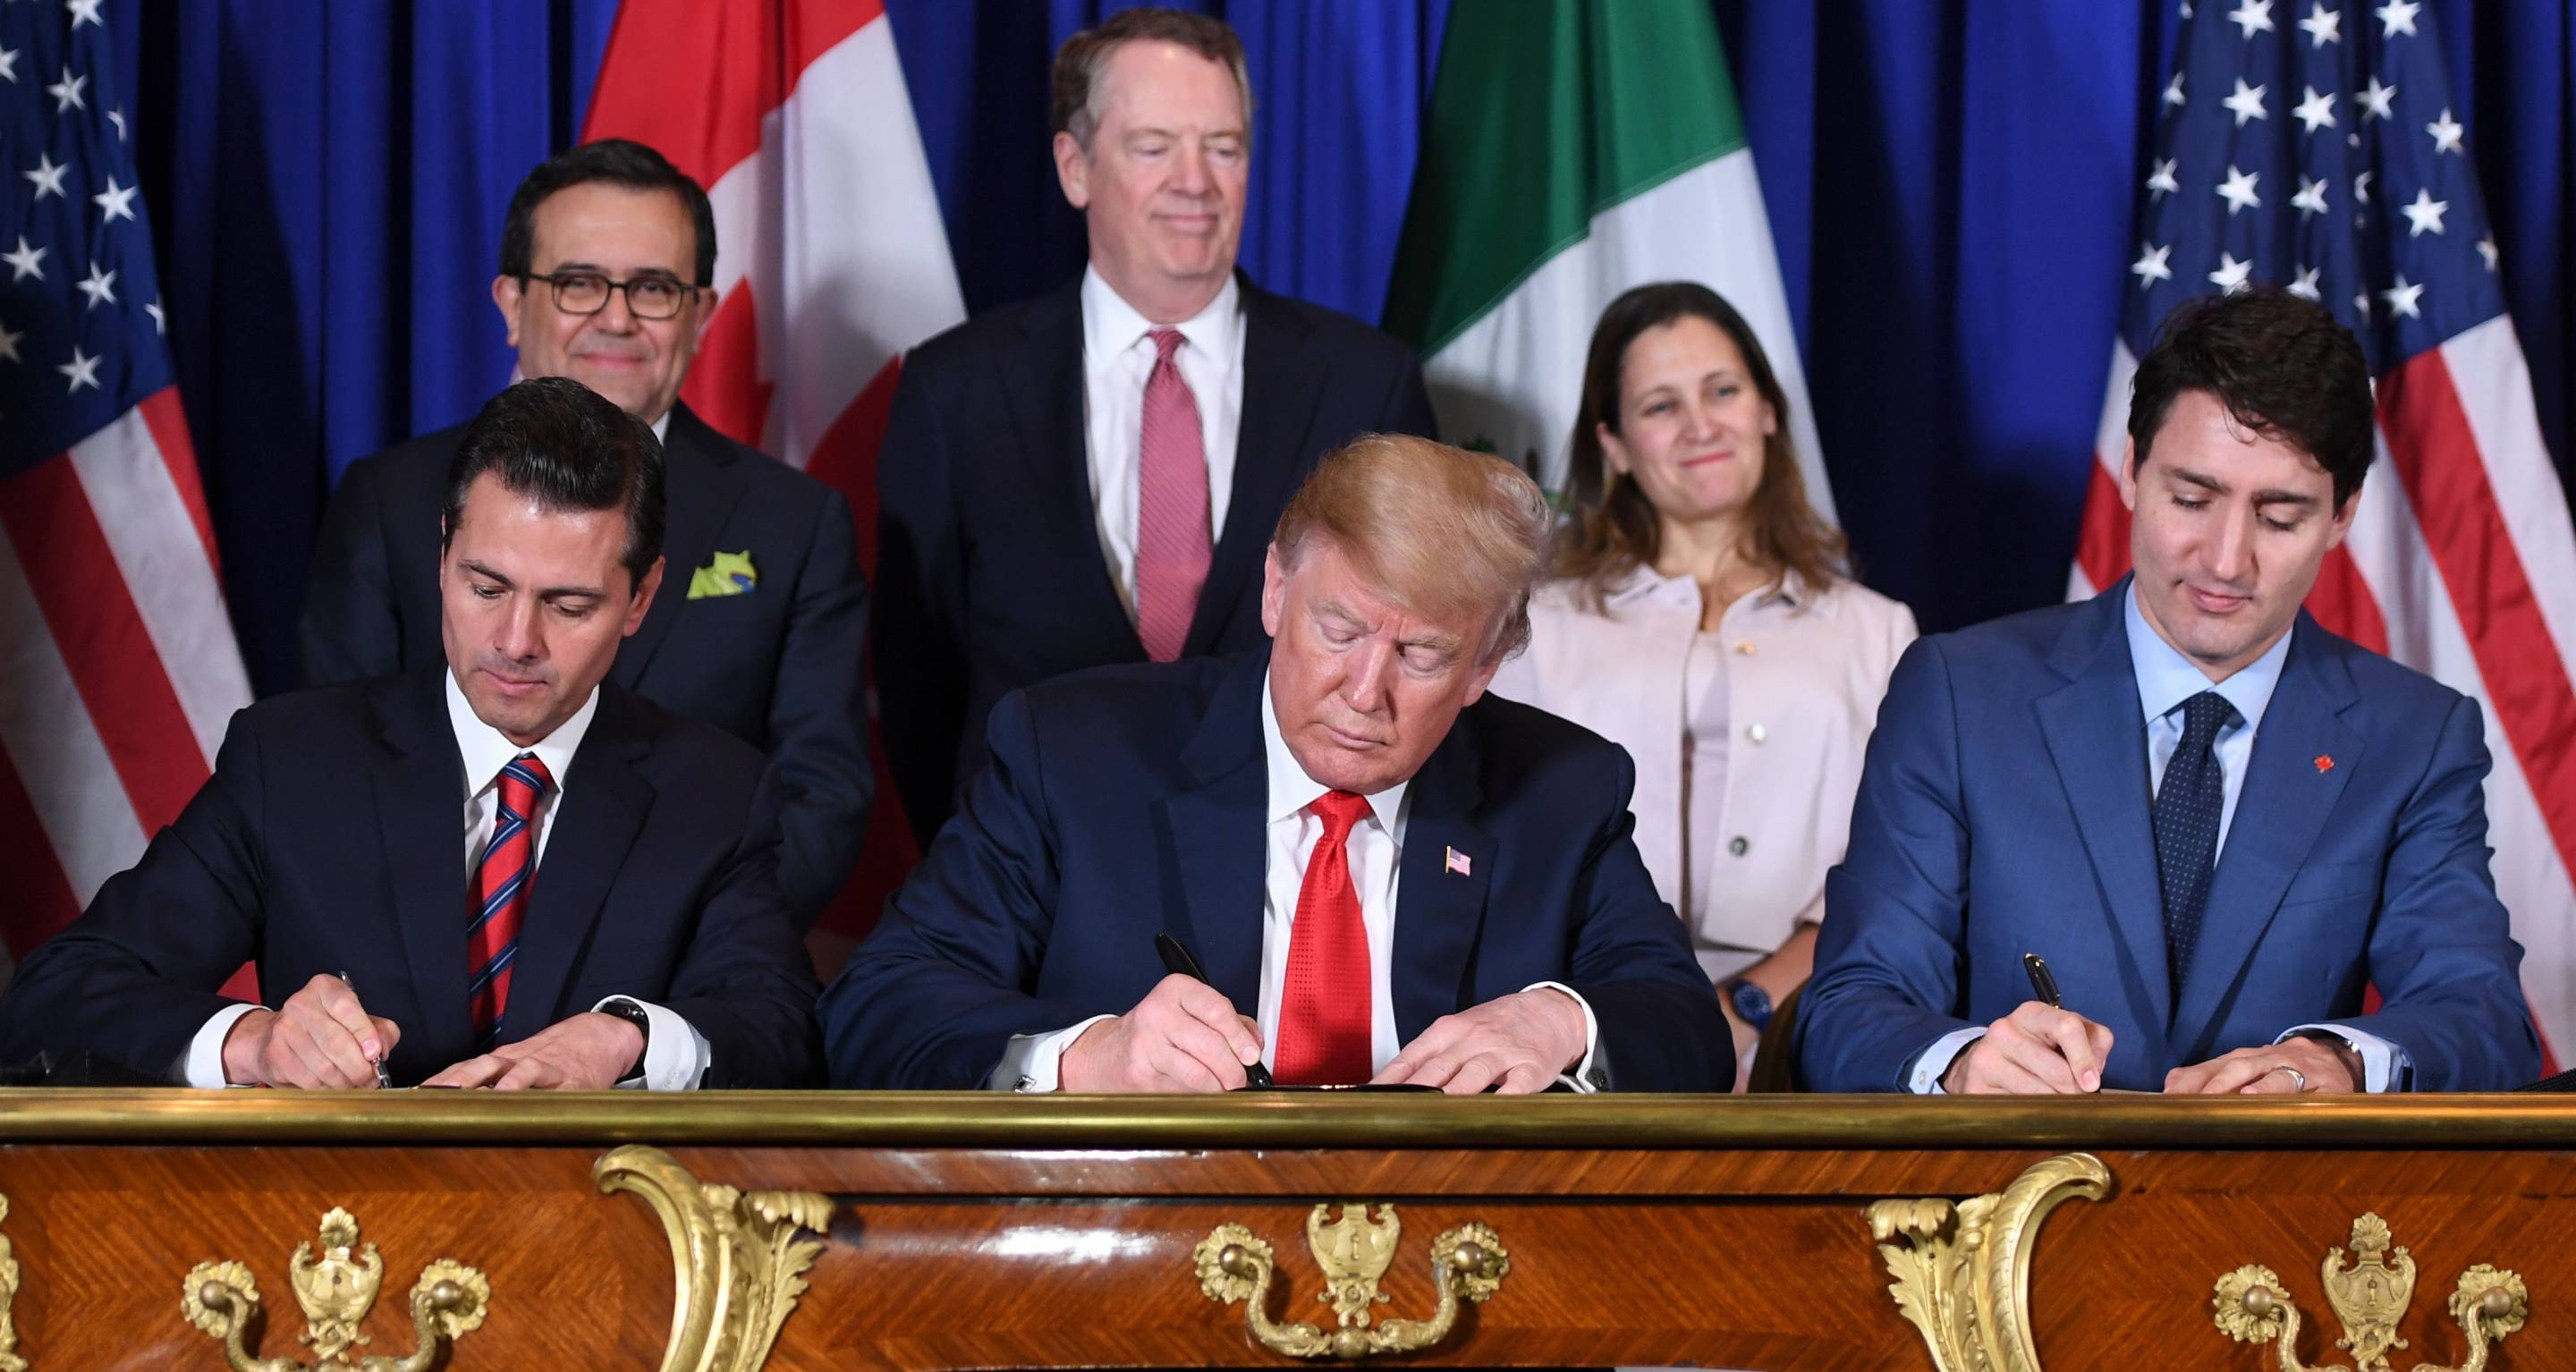 Mexico's President Enrique Pena Nieto (L), U.S. President Donald Trump (C), and Canadian Prime Minister Justin Trudeau sign the US-Mexico-Canada Agreement (USMCA)